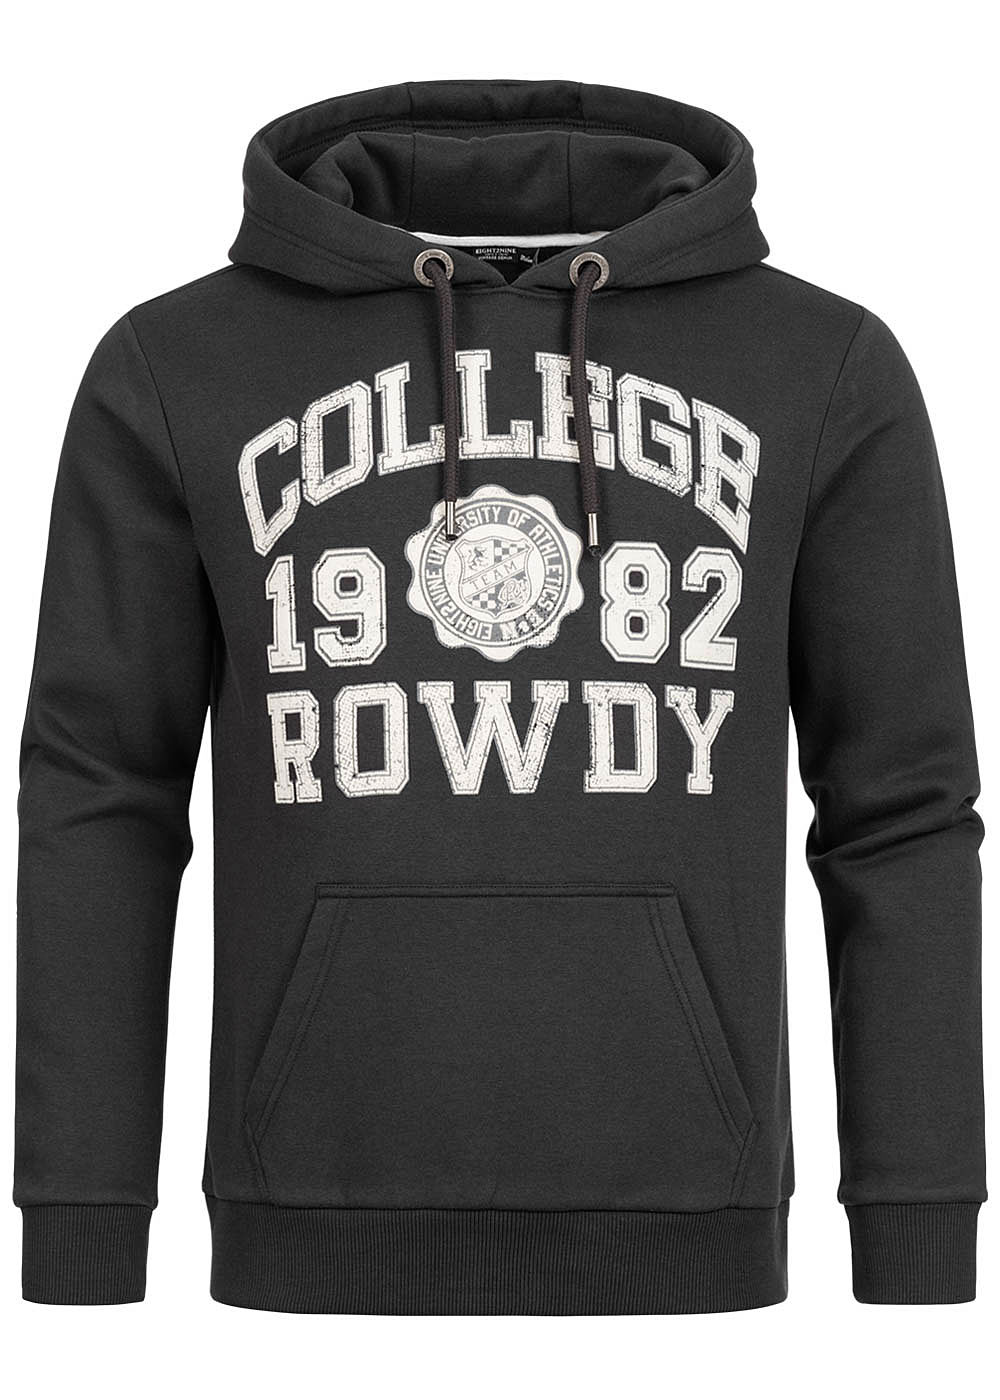 Eight2Nine Herren Sweat Hoodie Kapuze Kängurutasche College Rowdy Frontpatch schwarz weiss - Art.-Nr.: 20094272